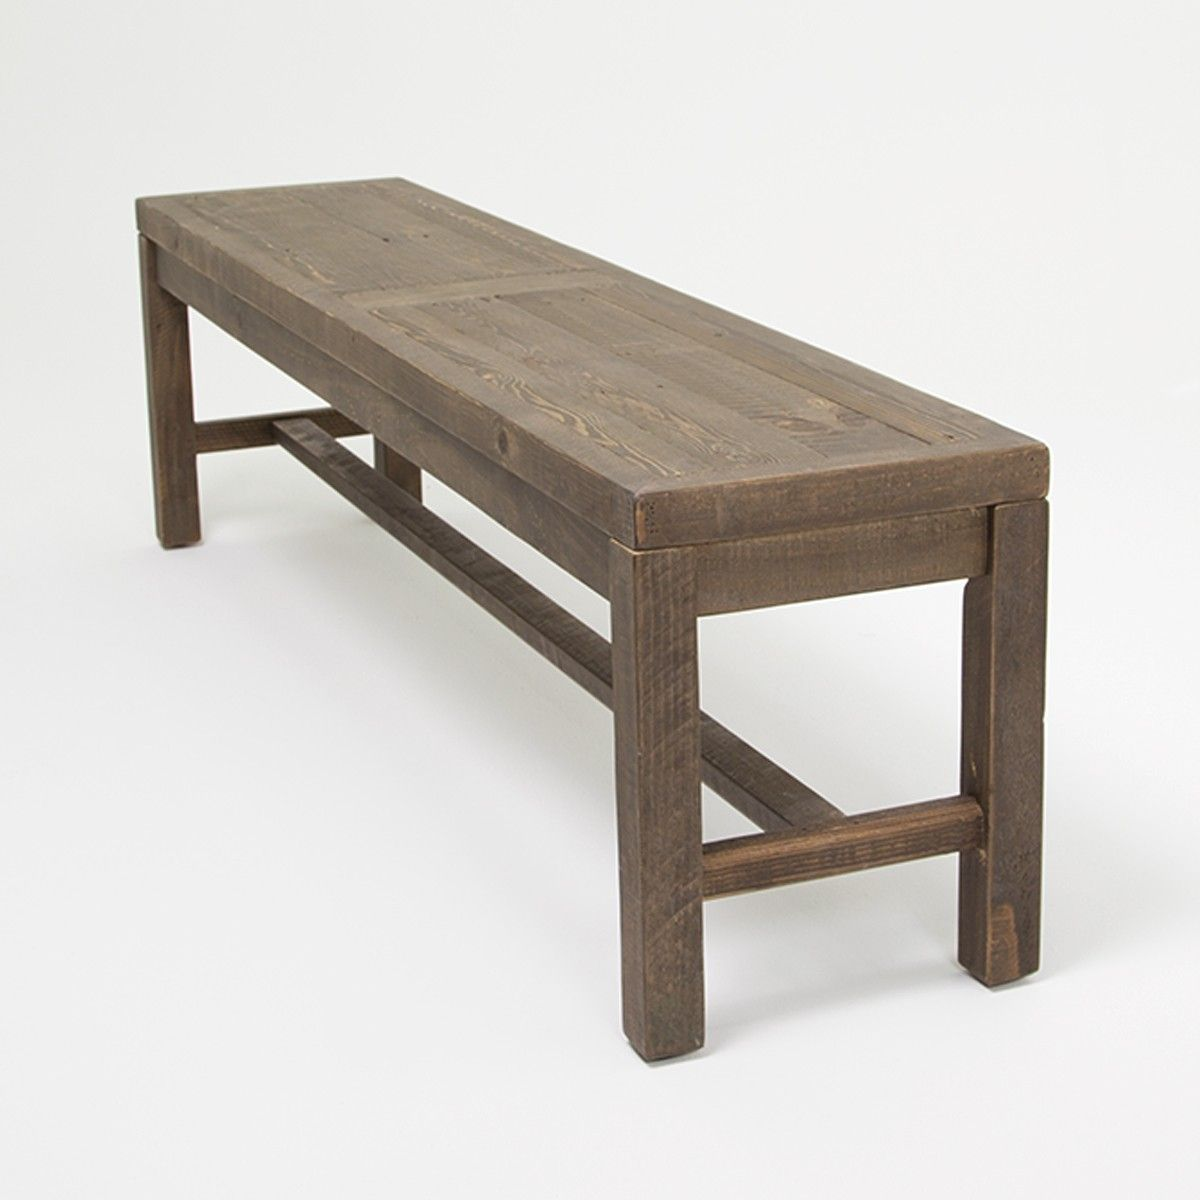 Benches Made From Bed Frames | Stonemill Bench